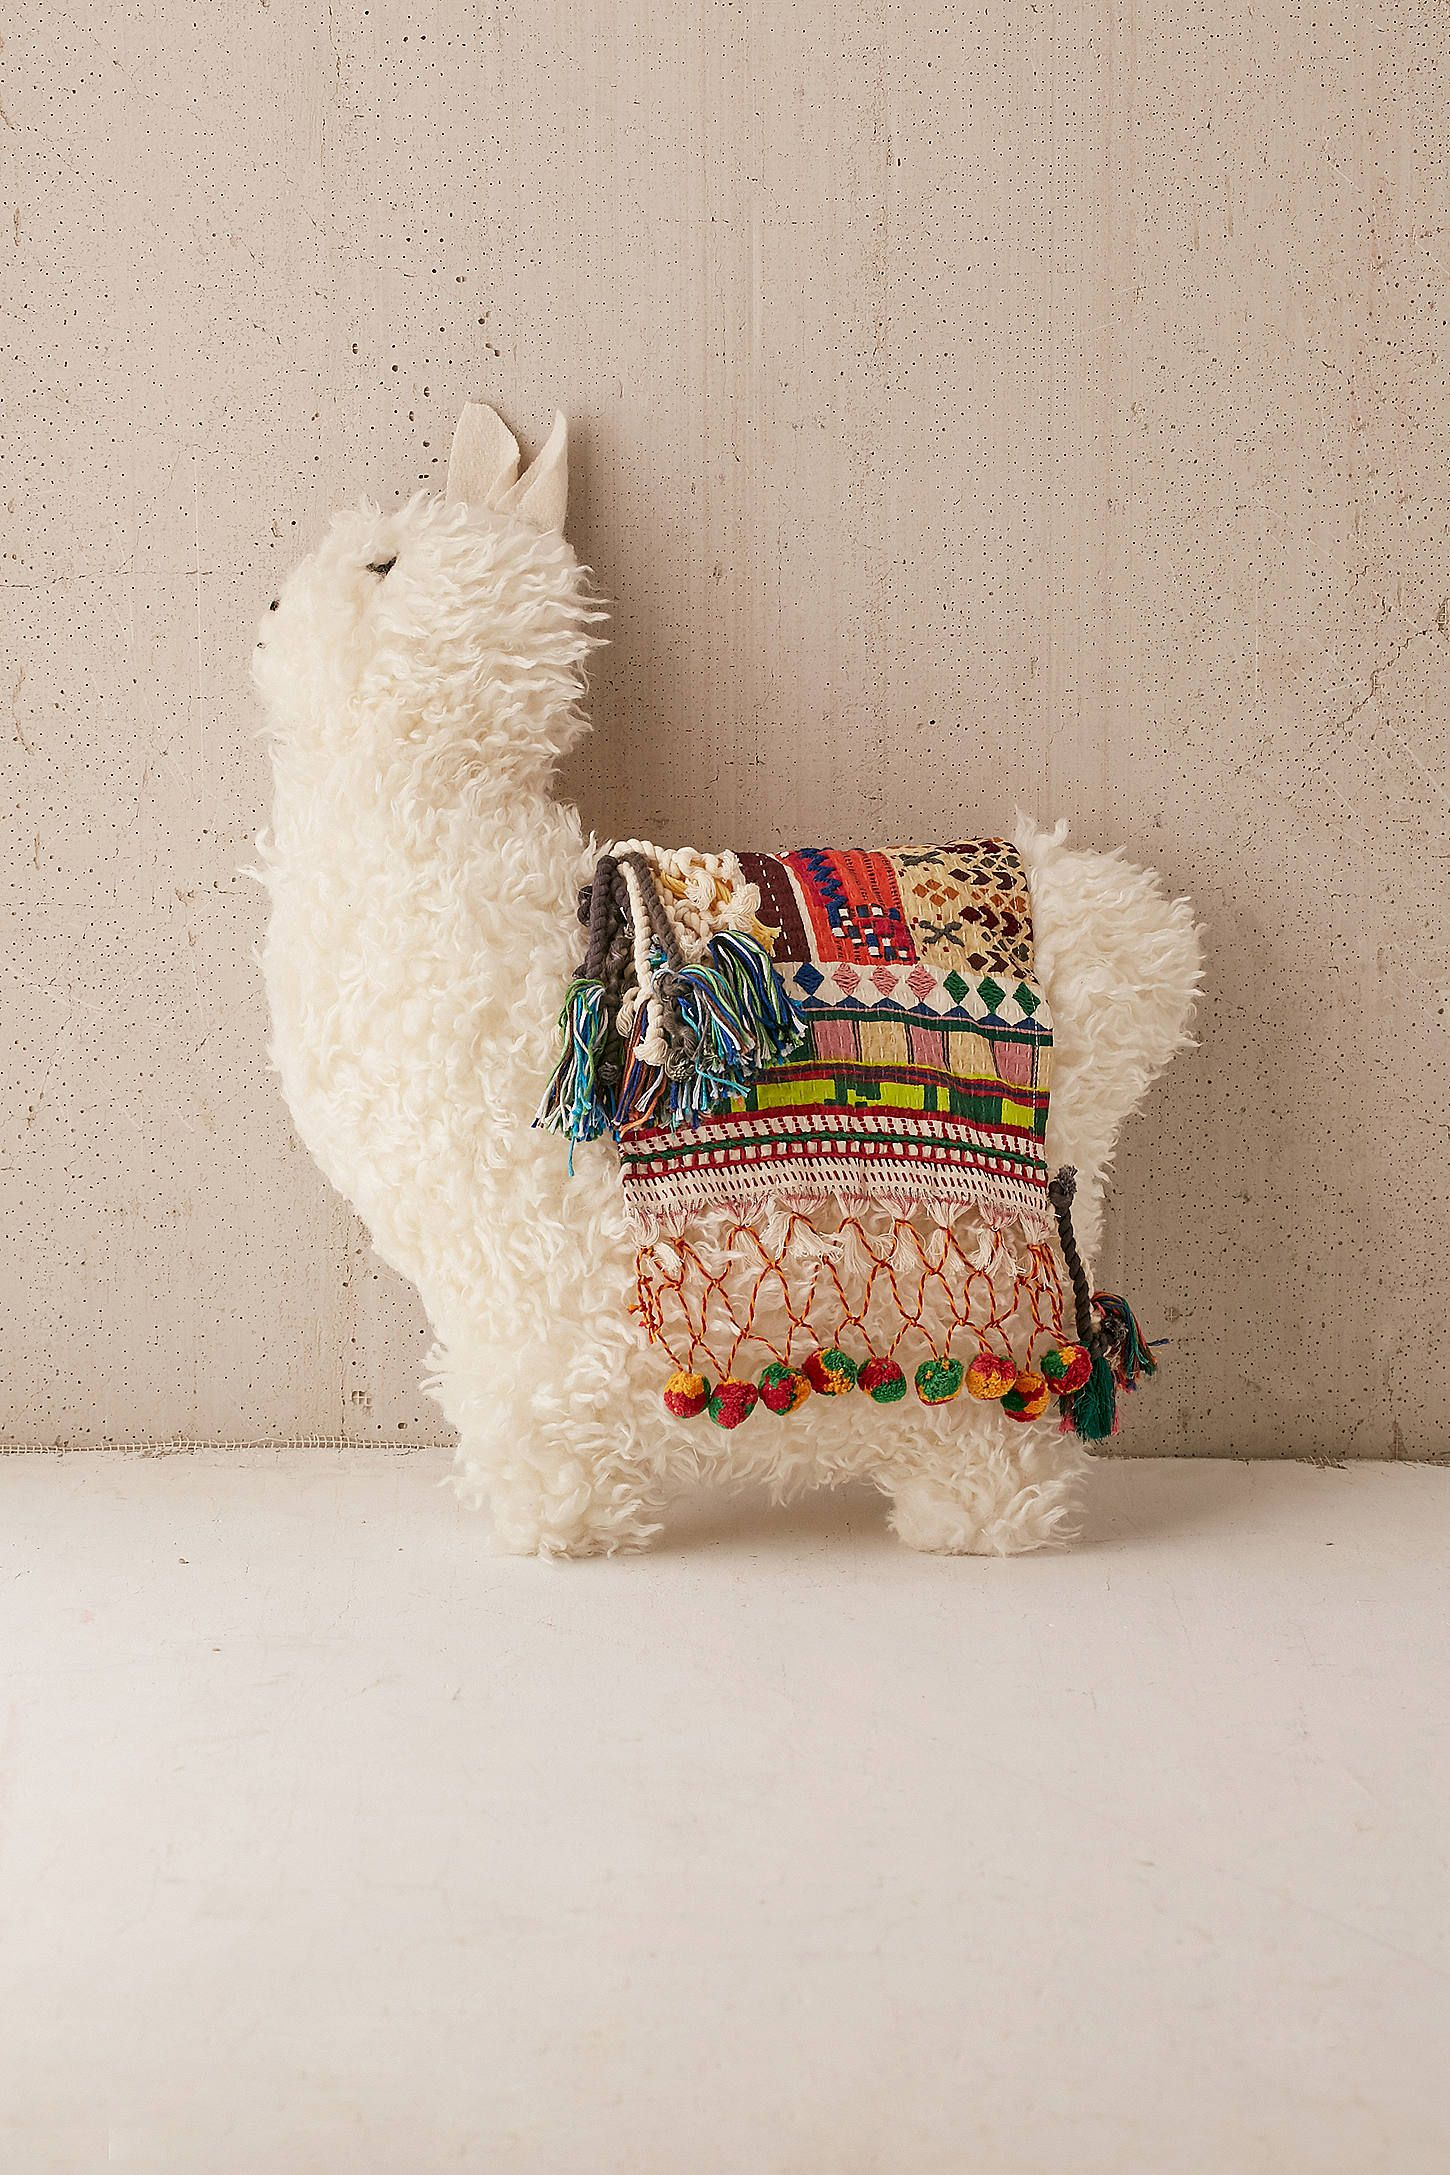 Fluffy Kissen Flauschiges Kissen Im Lamadesign Fluffy Home Llama Pillow